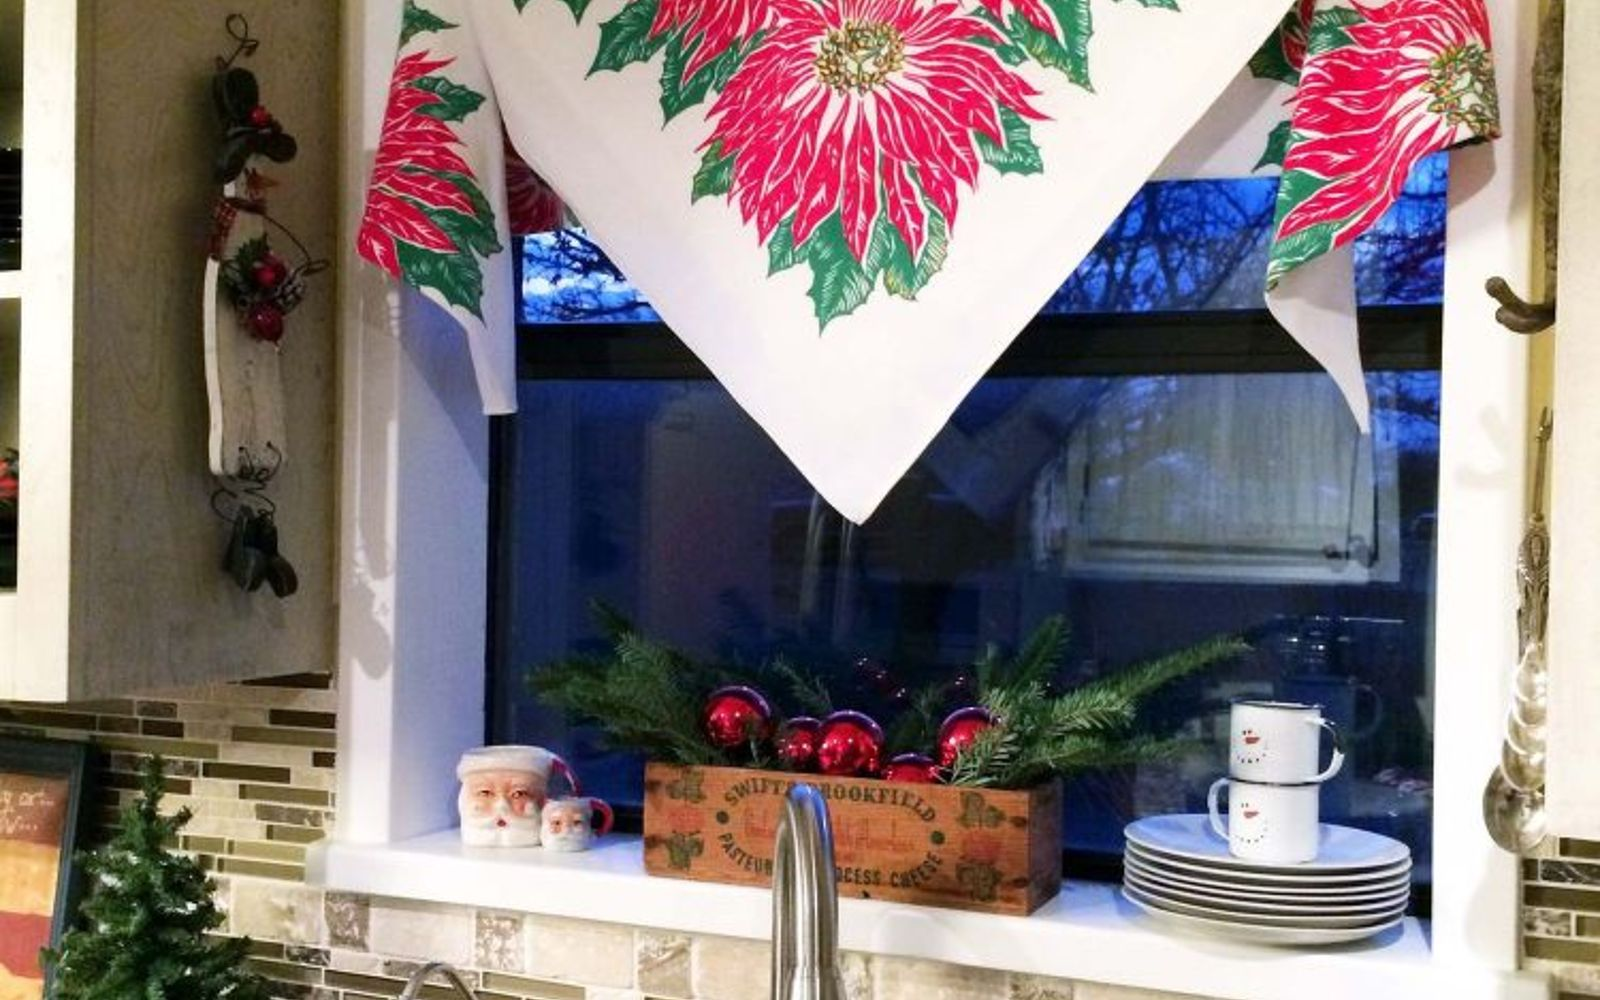 s 9 genius decorating hacks using tablecloths, repurposing upcycling, Turn a tablecloth into an easy window curtain